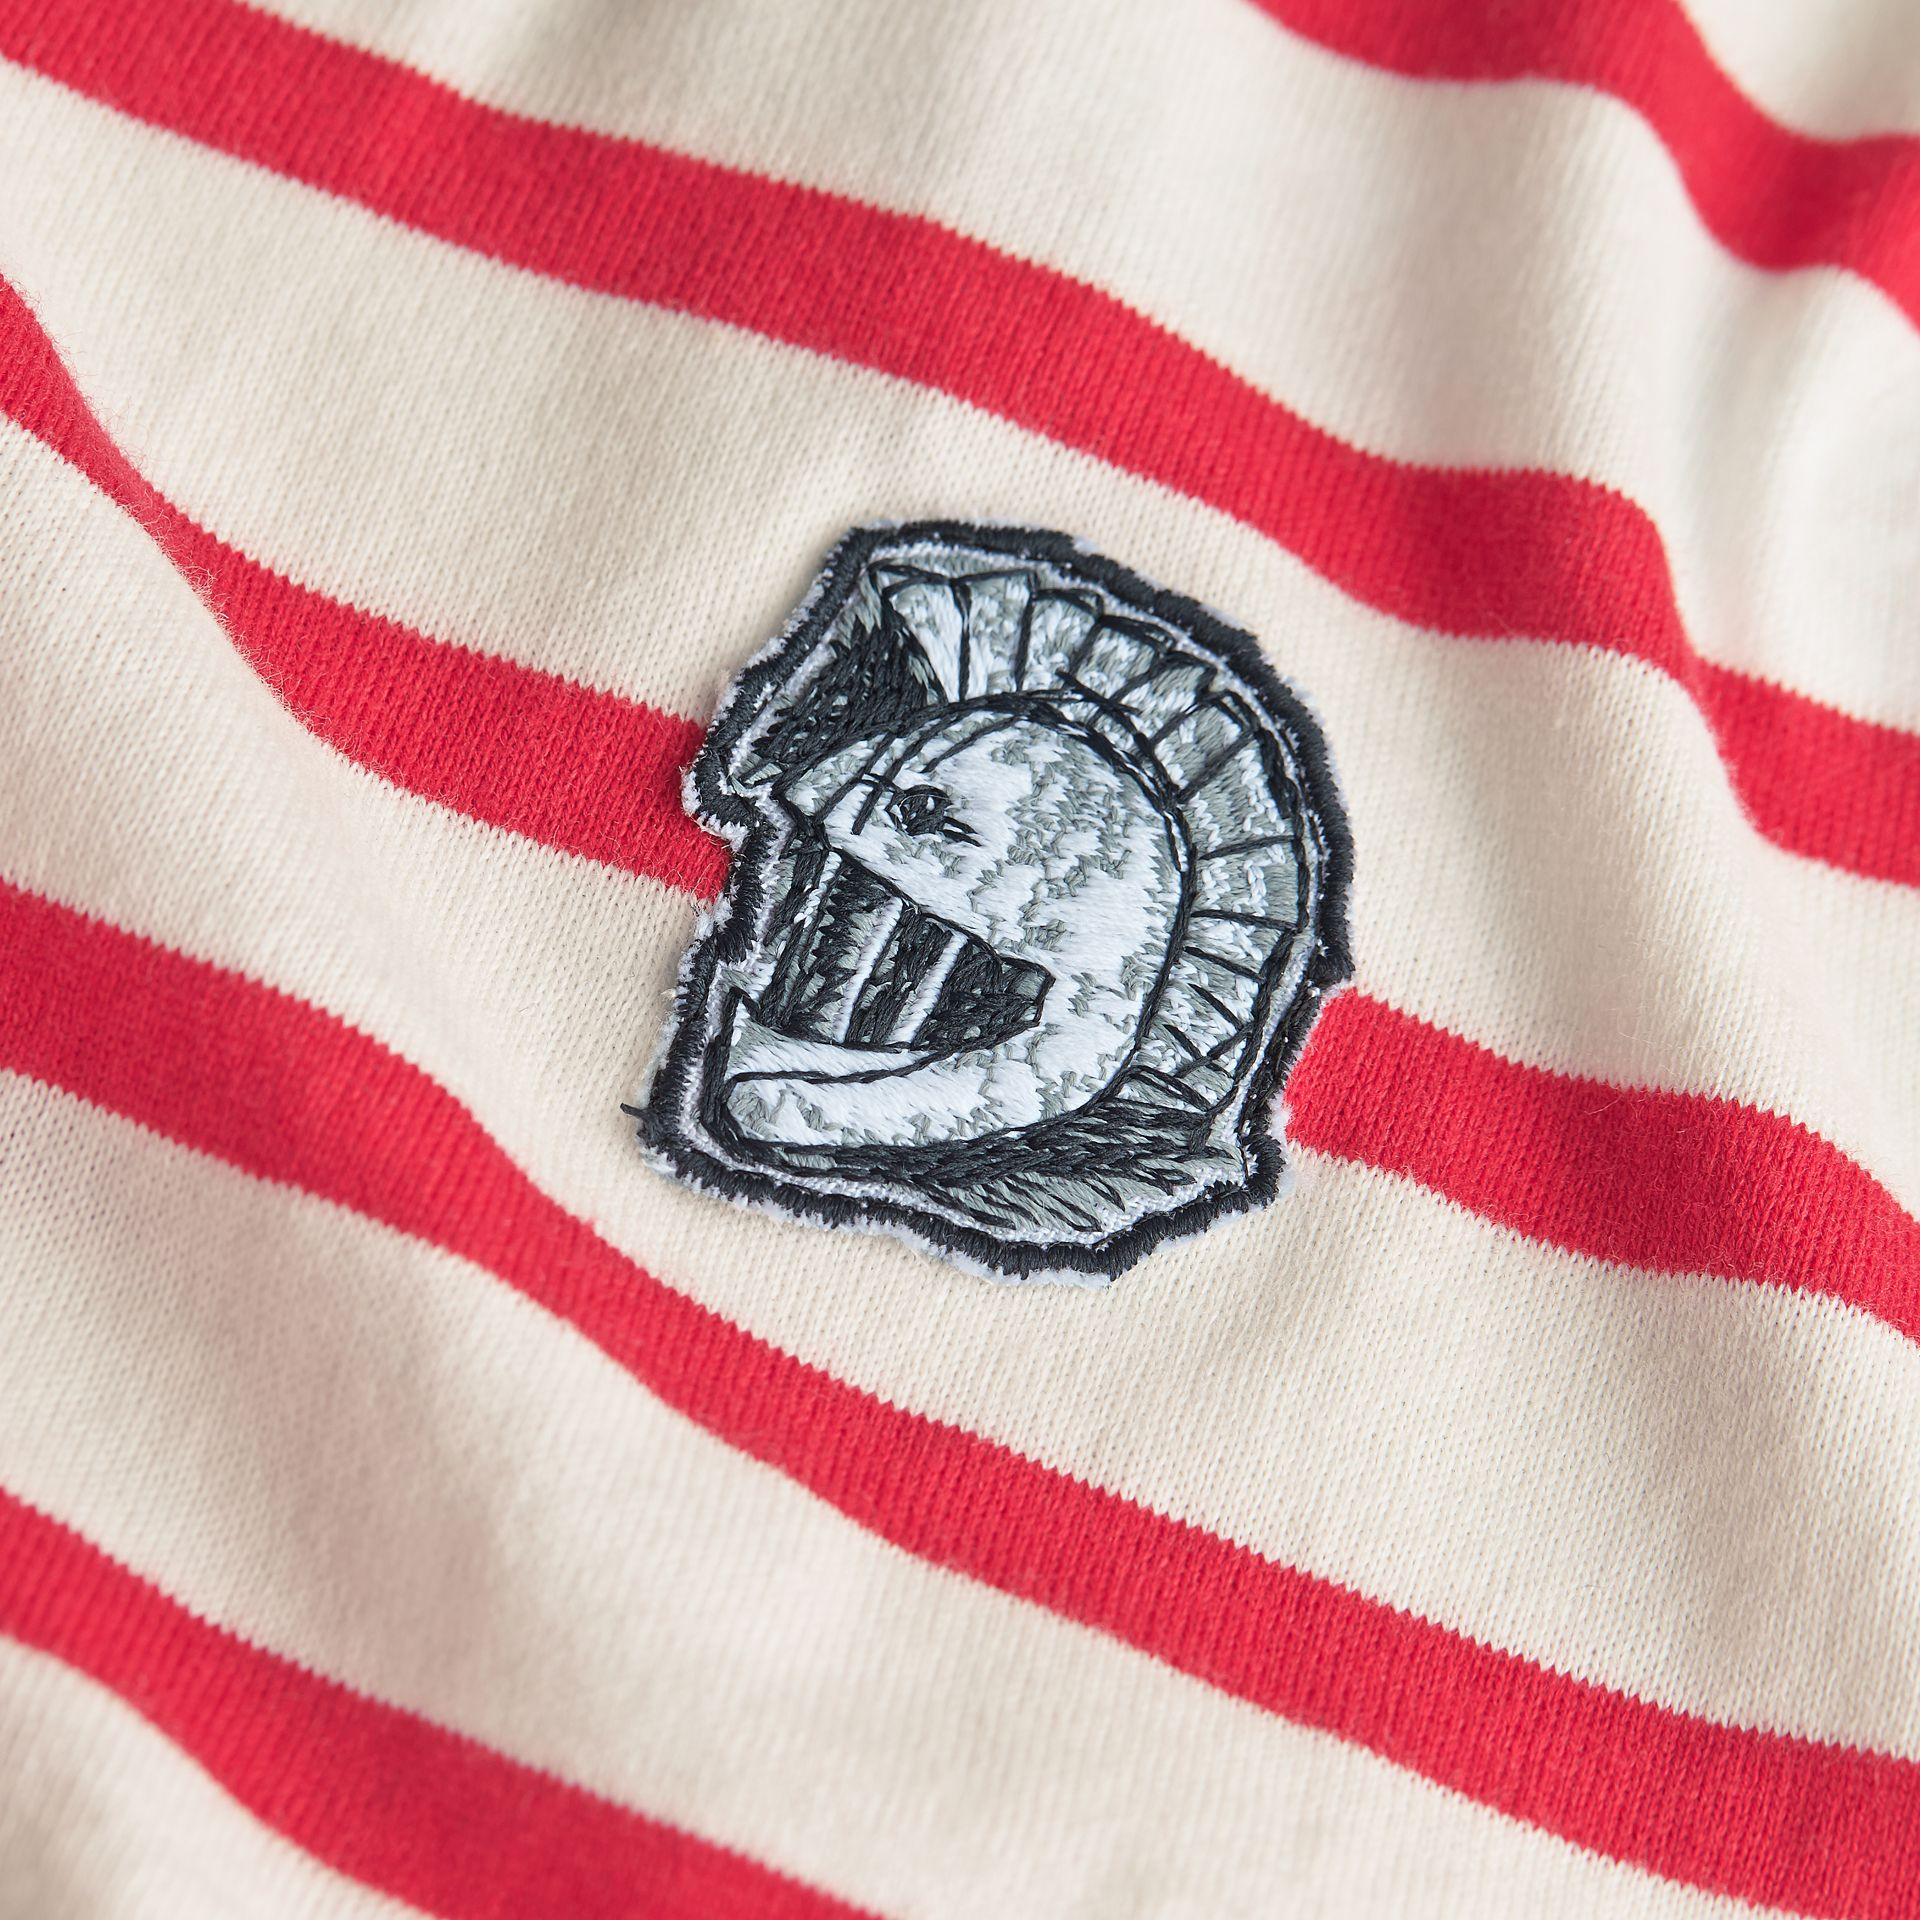 Unisex Pallas Helmet Motif Breton Stripe Cotton Top | Burberry - gallery image 2